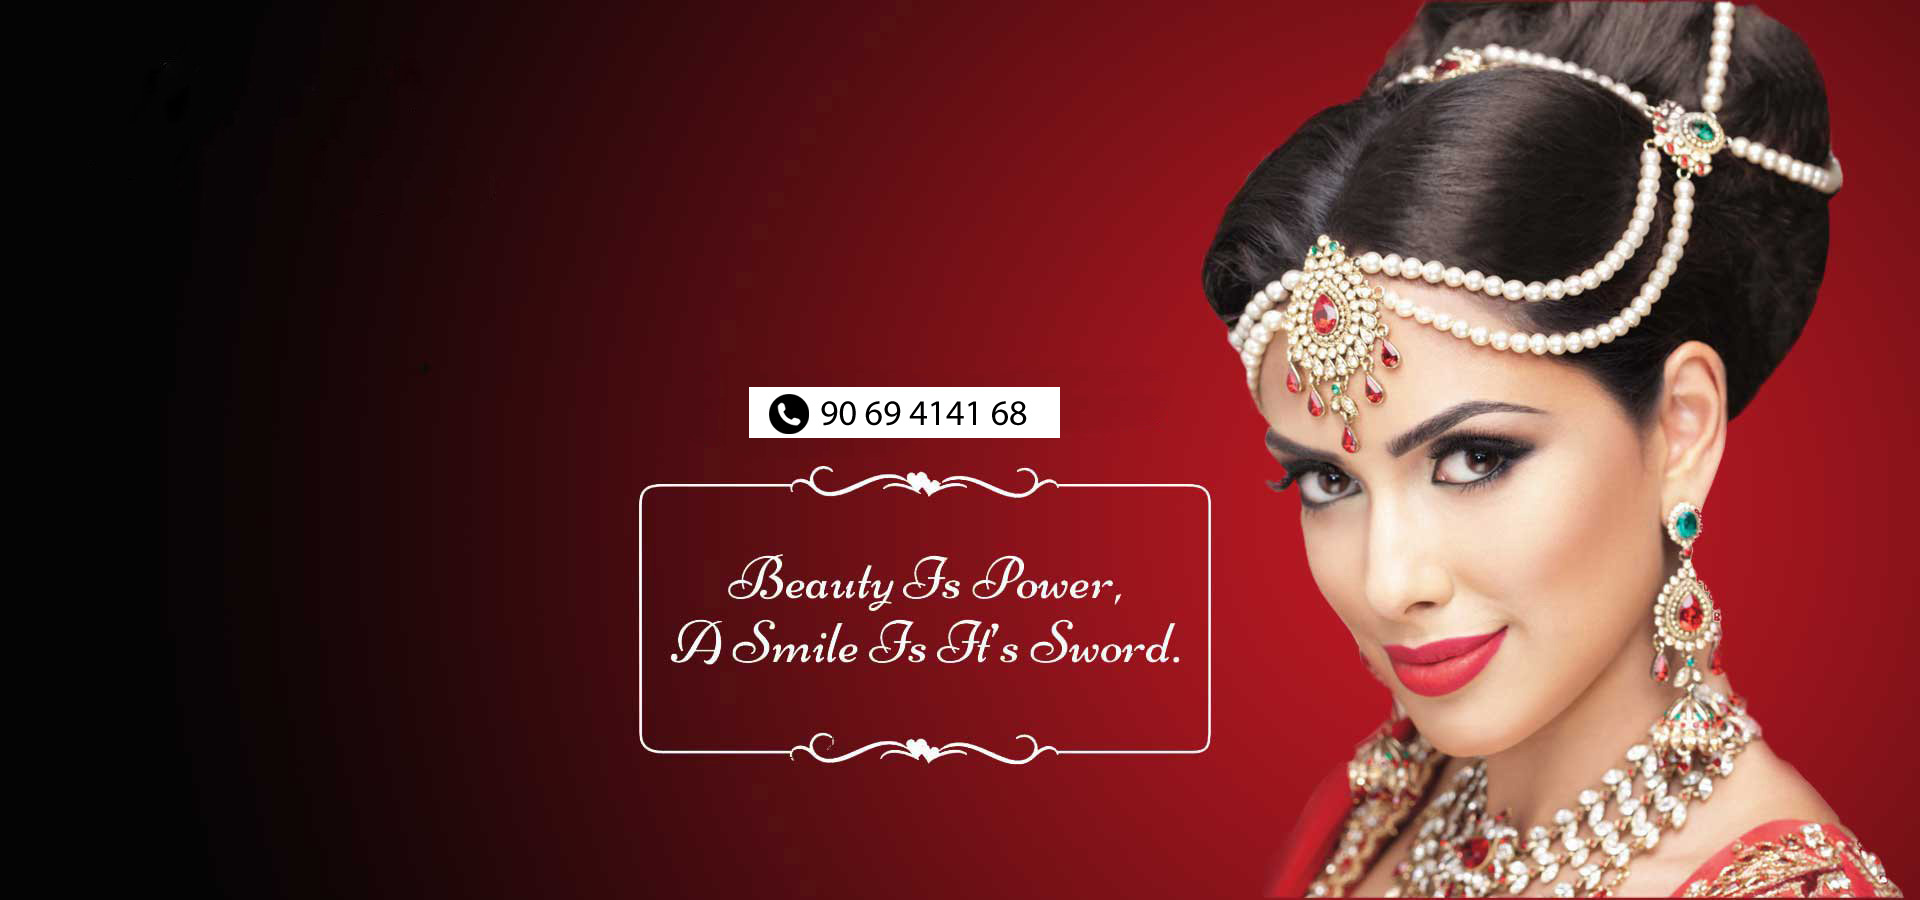 Best beauty deals in pune